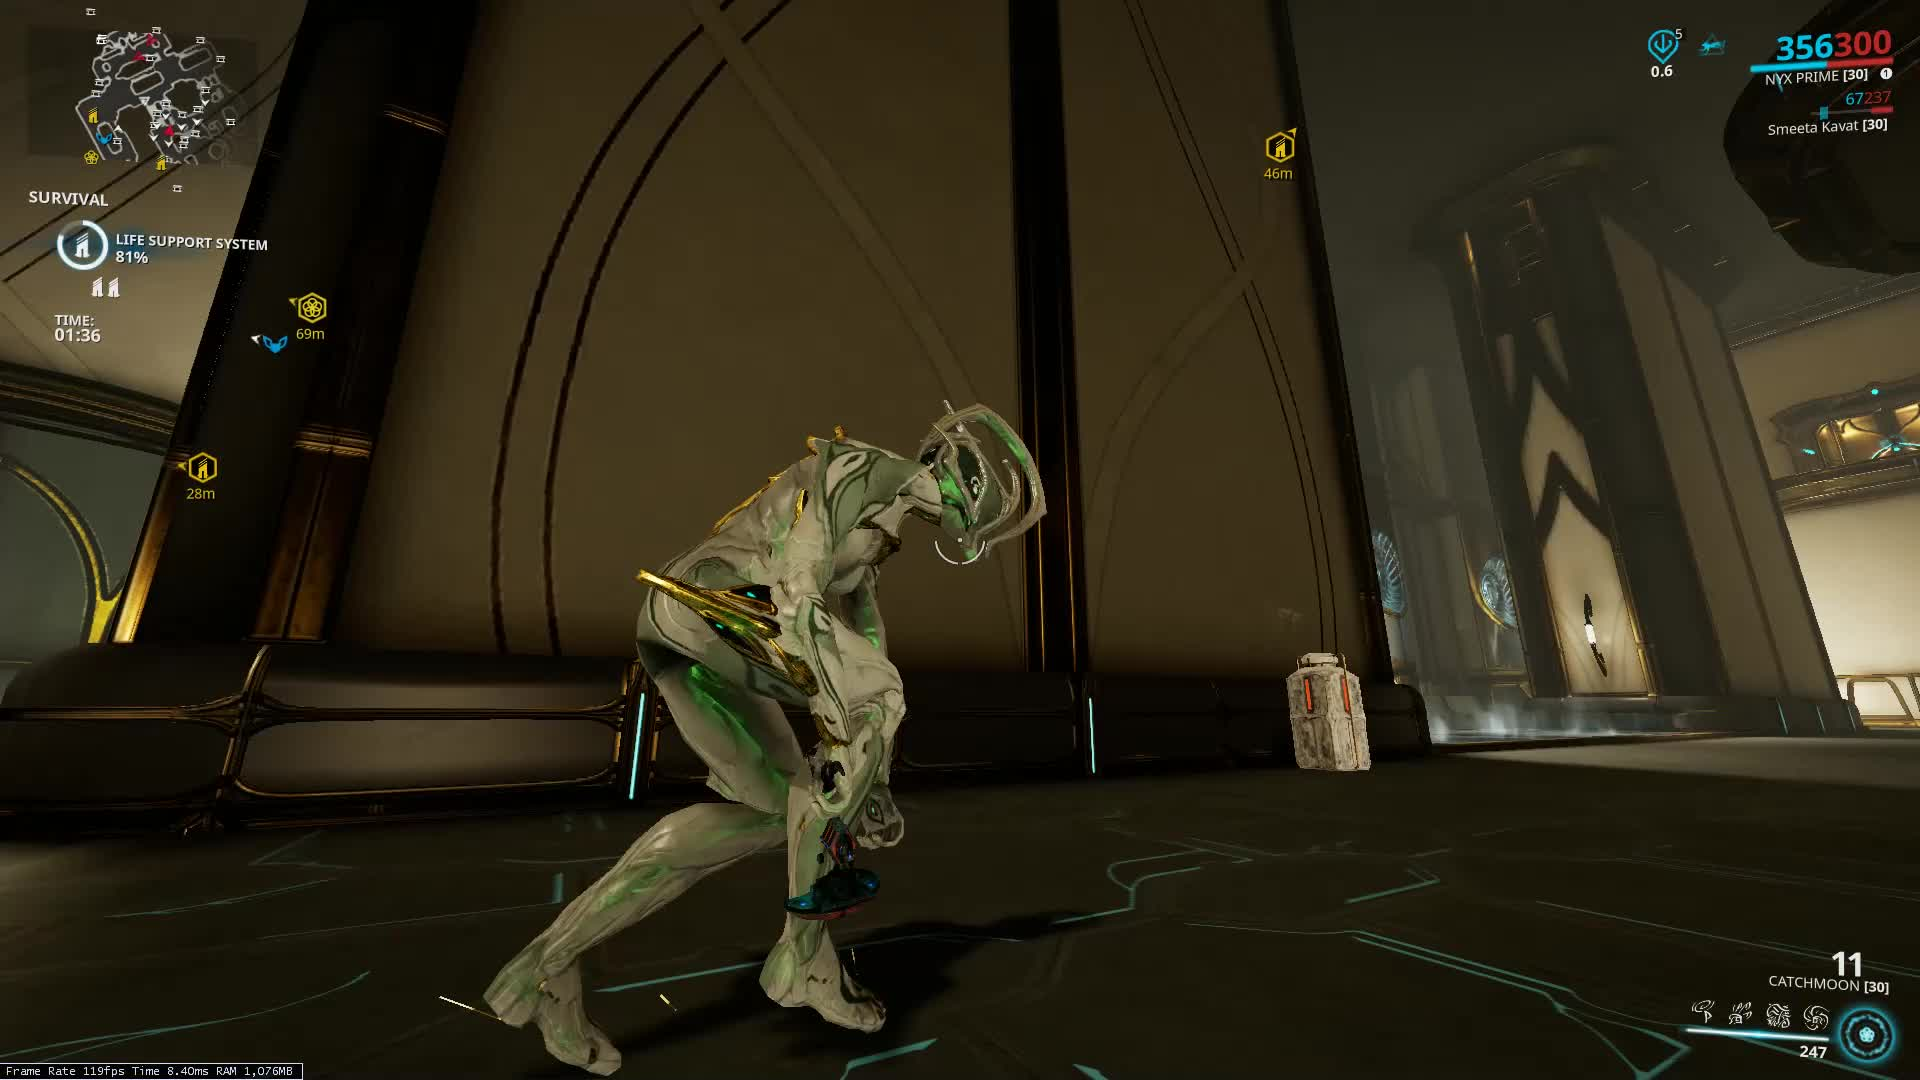 catchmoon, nyx, pronton pulse, warframe, this is how the game was meant to be played GIFs